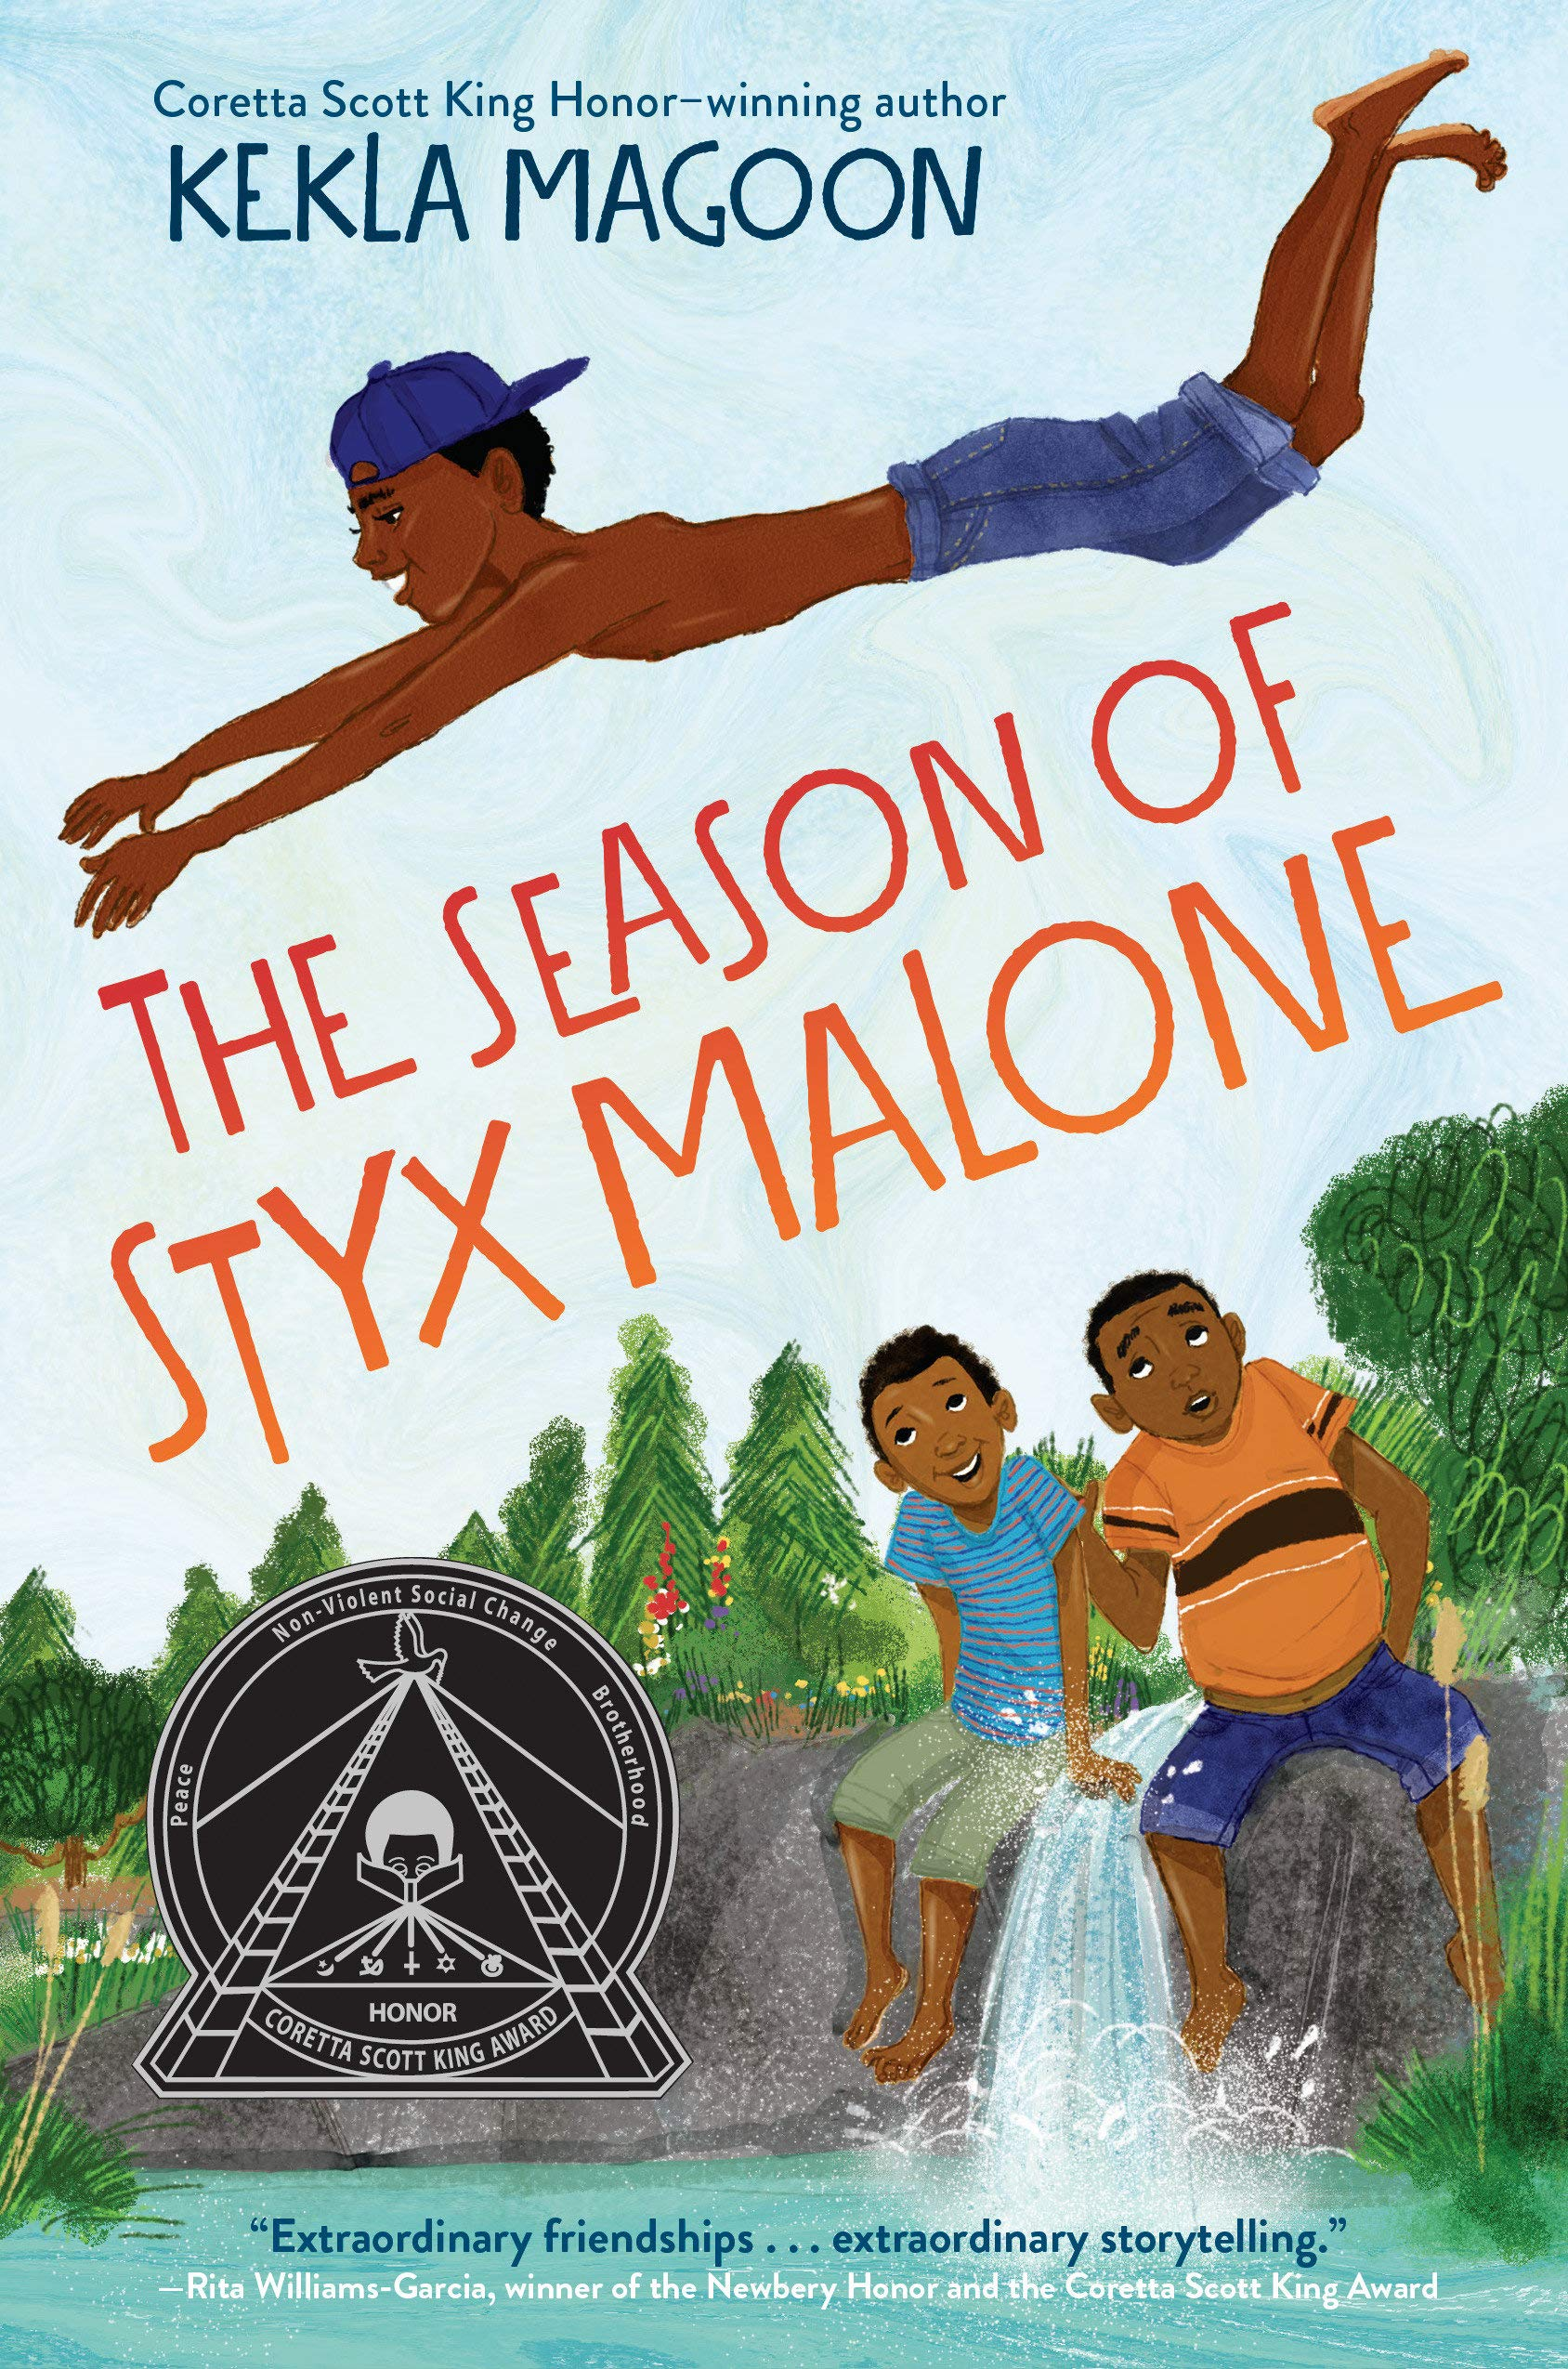 The Season of Styx Malone: Q&A with Kekla Magoon